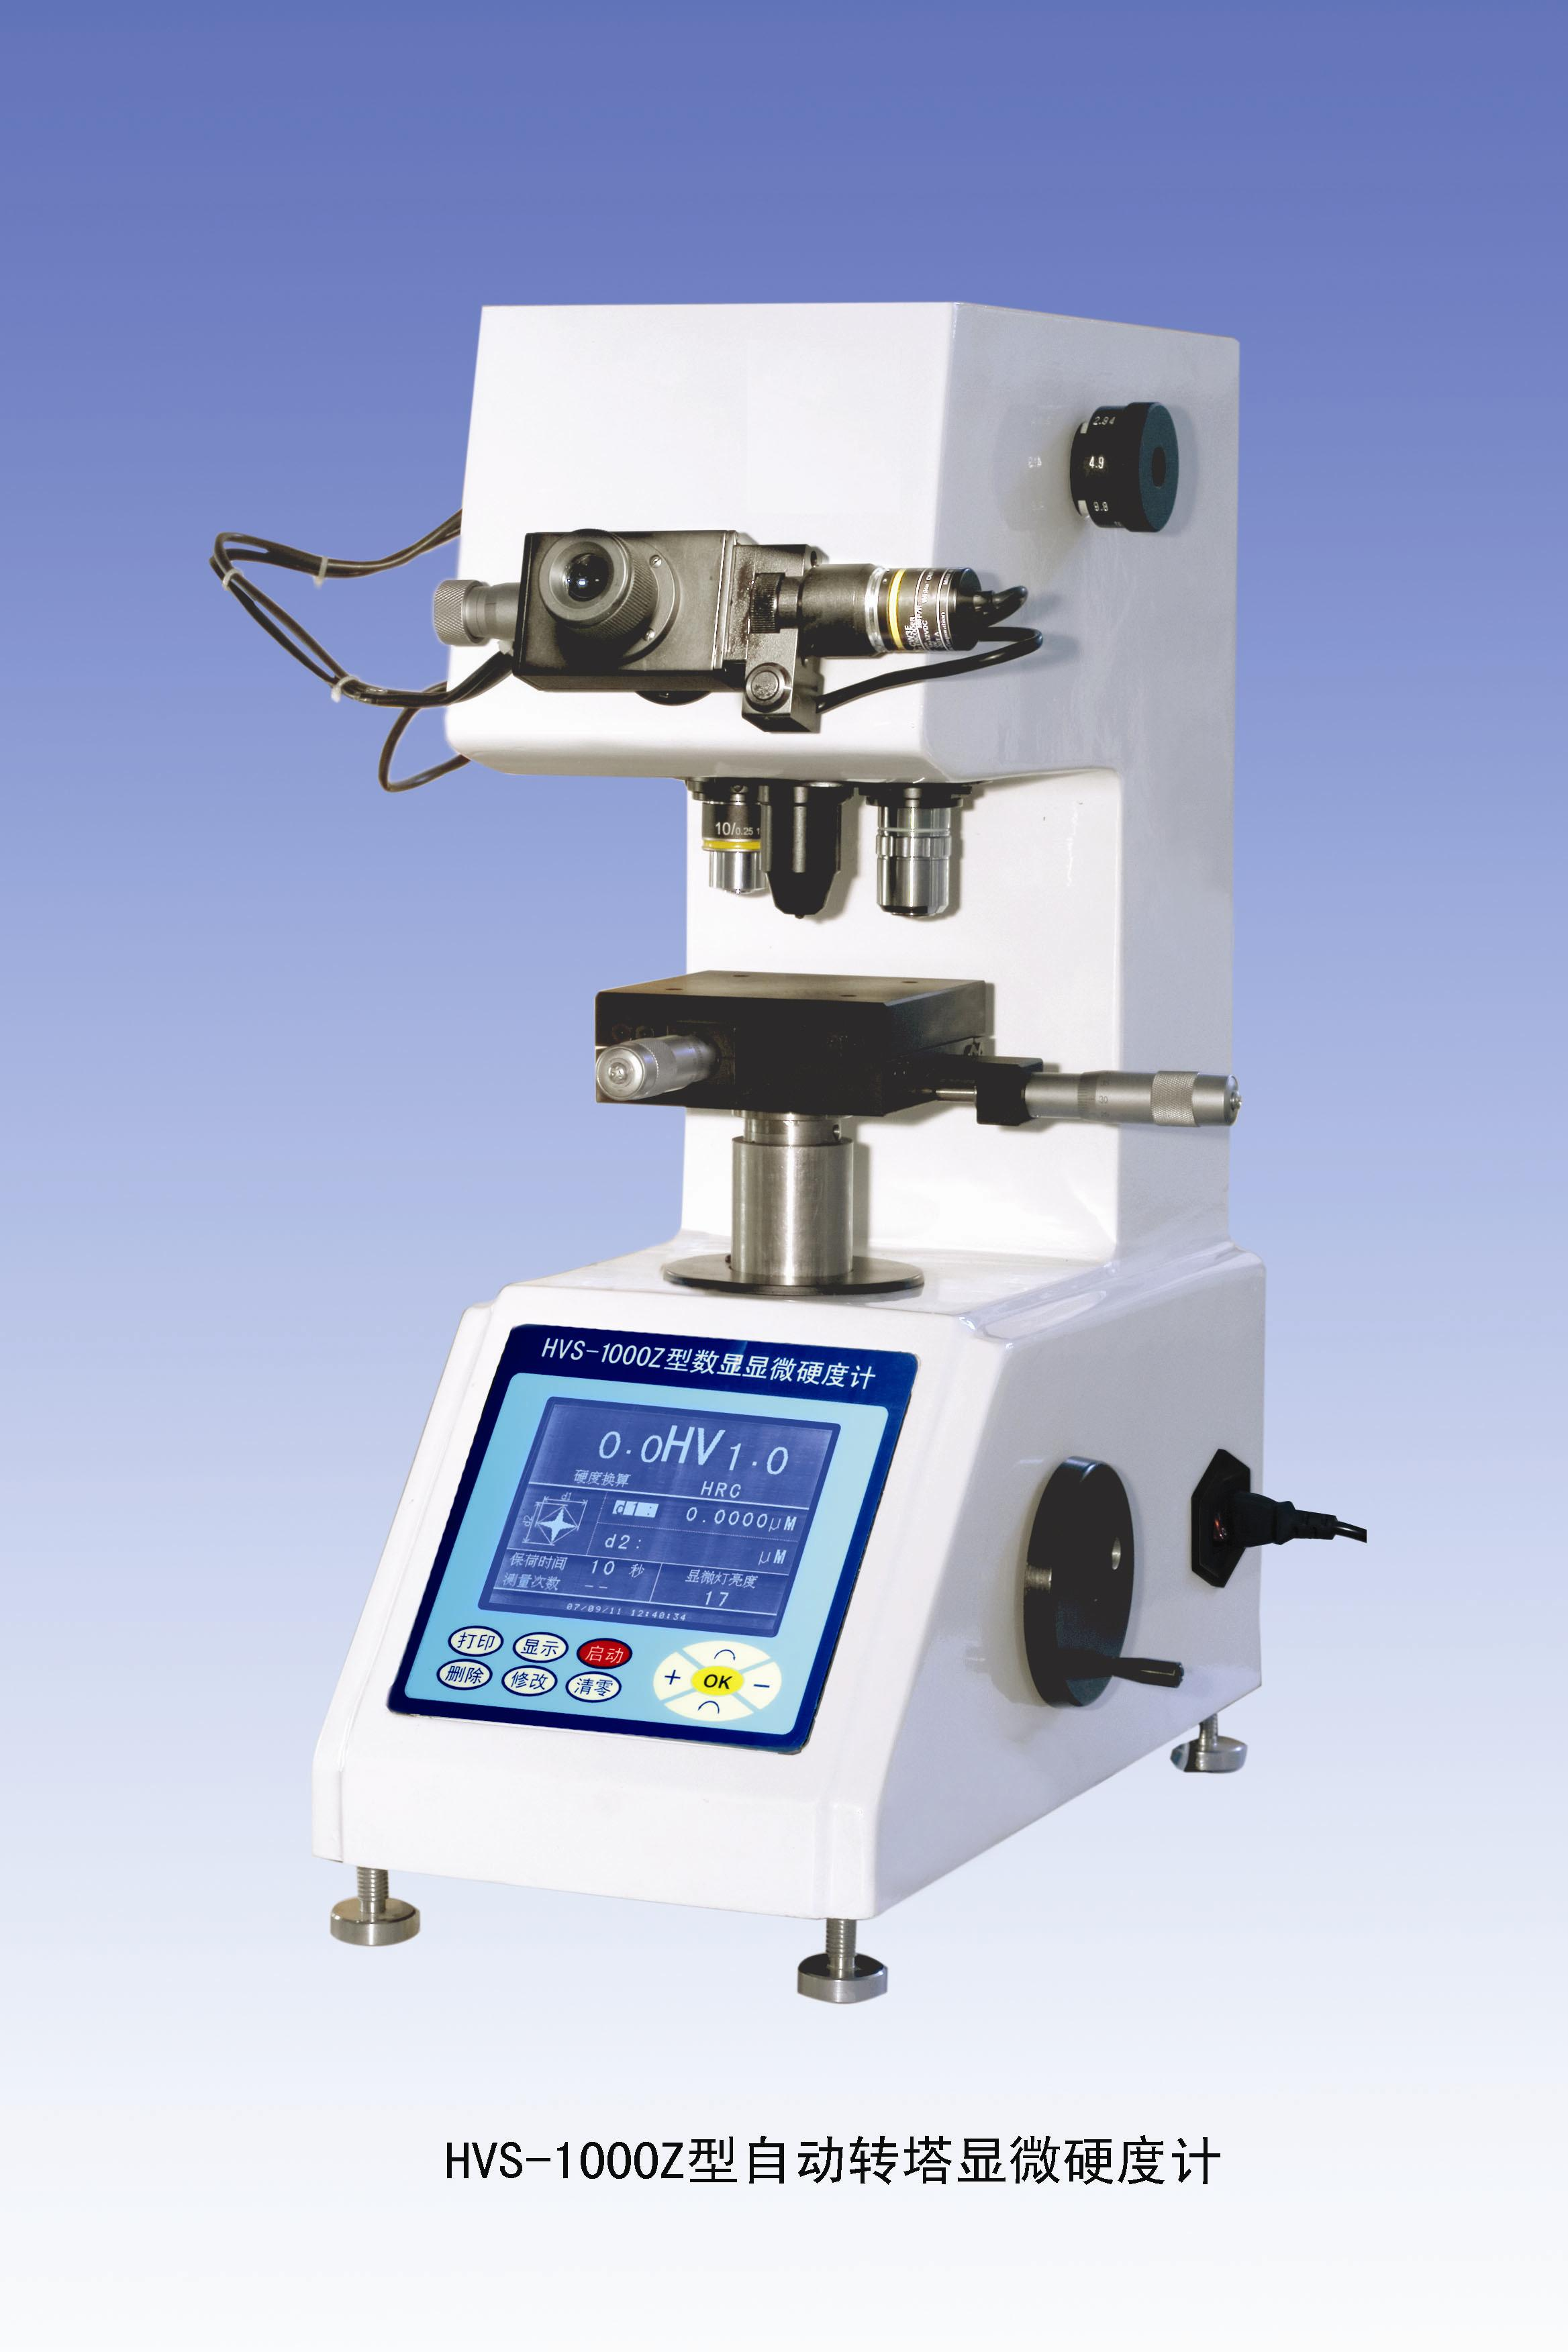 Digital Micro Vickers Hardness Tester HVS-1000/HVS-1000Z